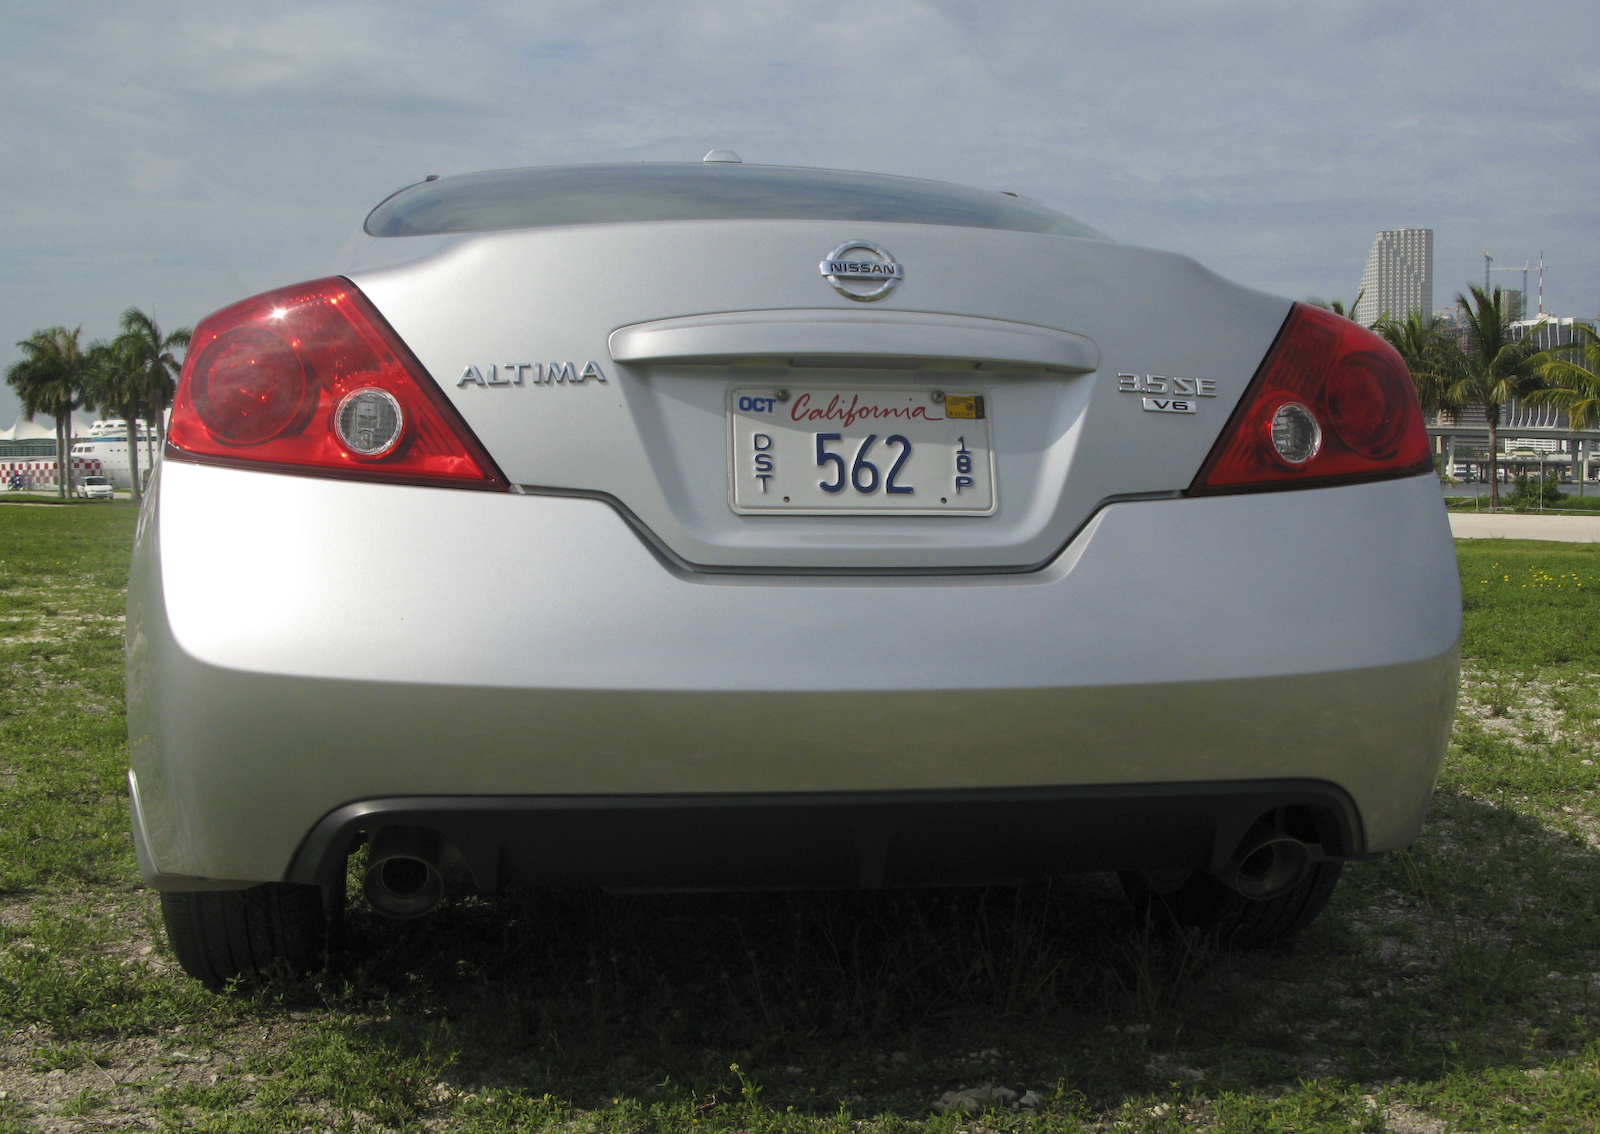 2009 Nissan Altima Coupe 3.5 SE | Top Speed. »